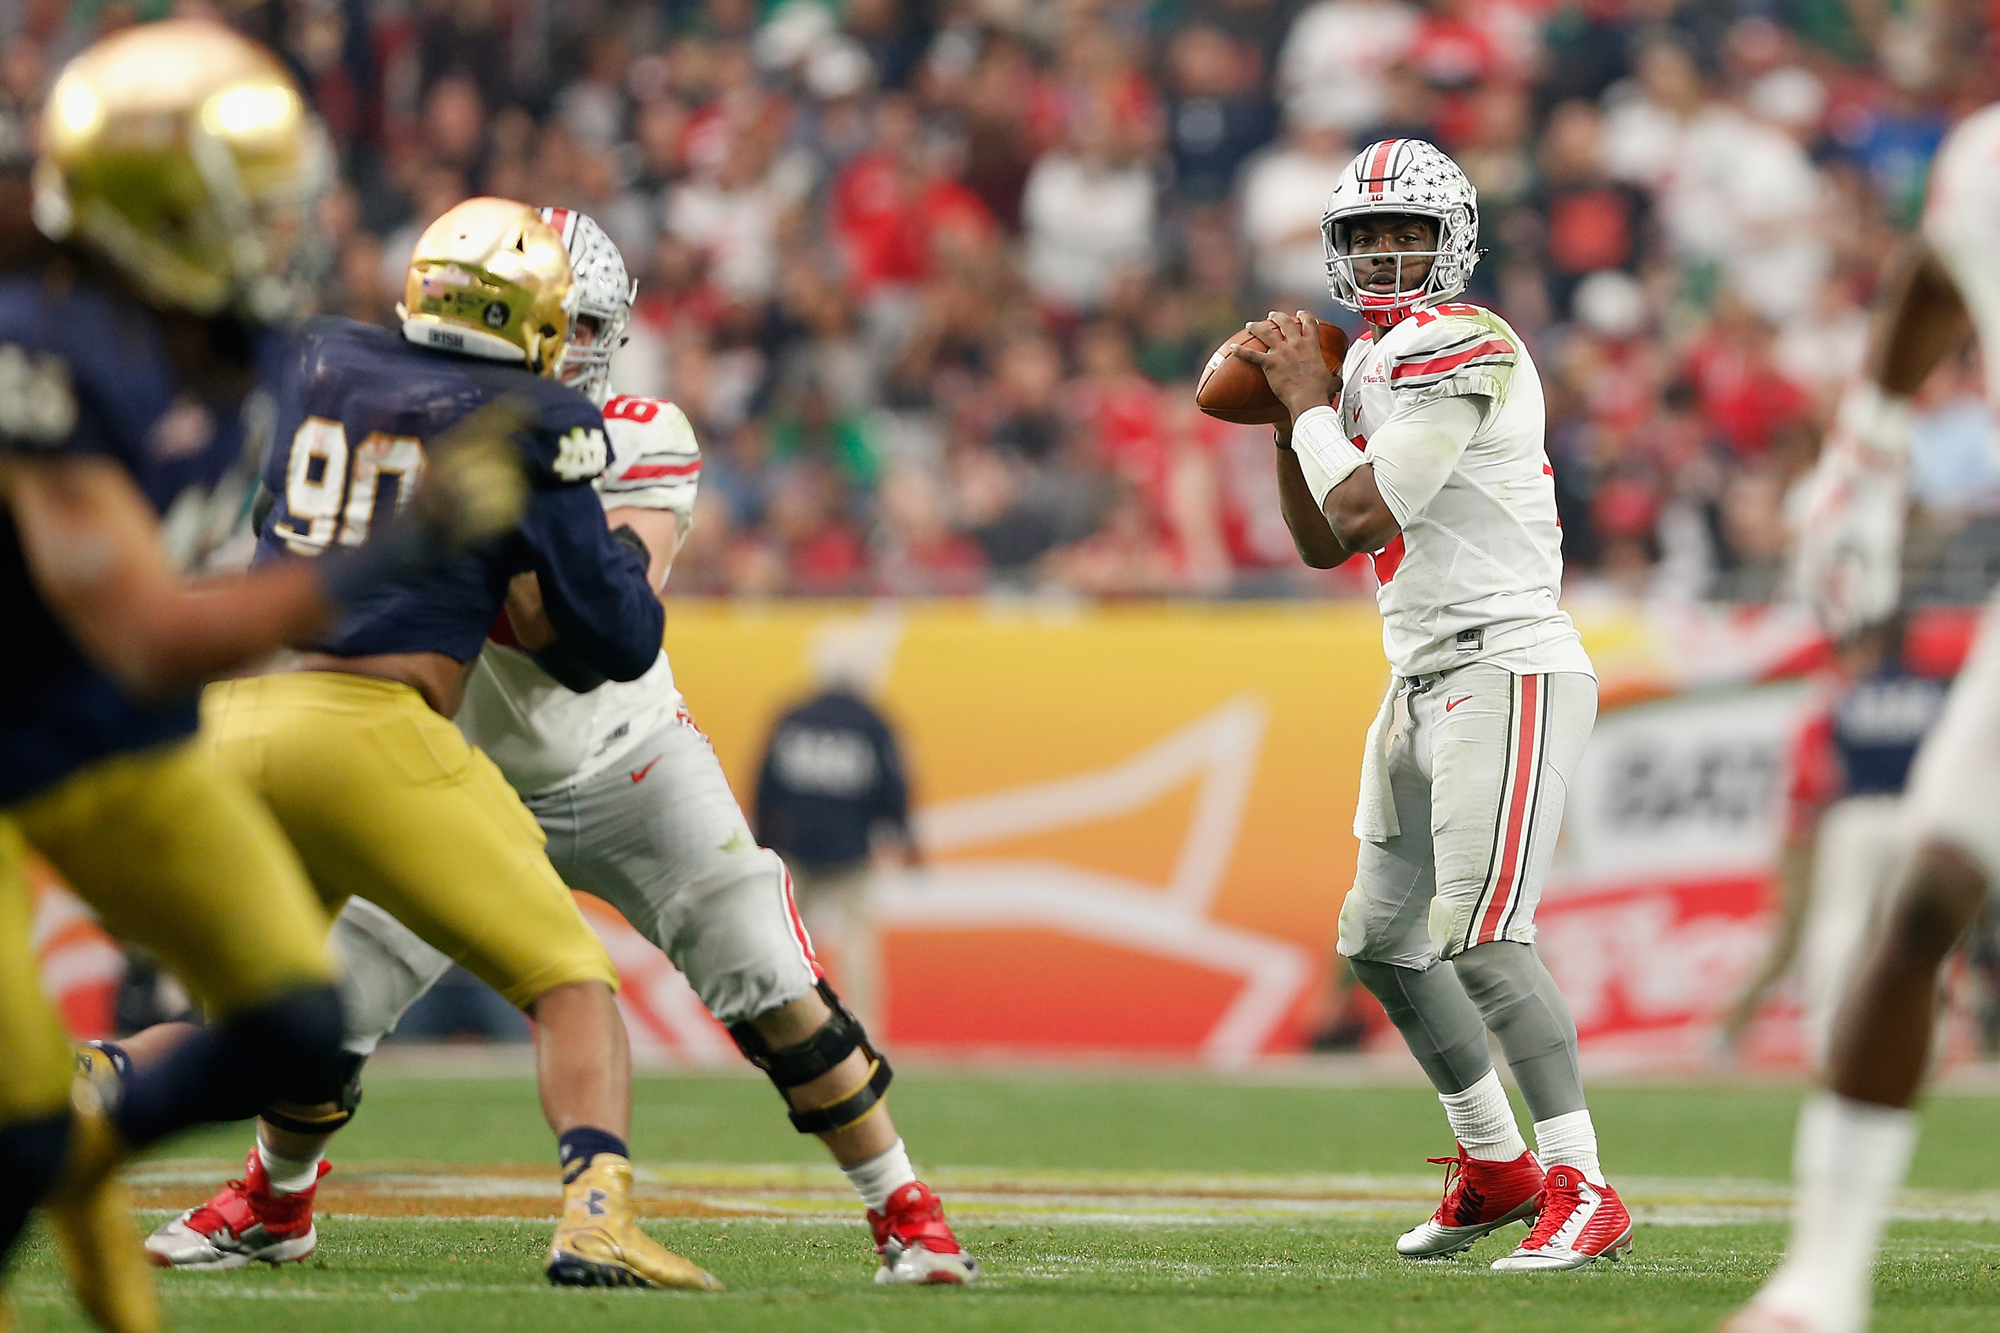 Quarterback J.T. Barrett #16 of the Ohio State Buckeyes drops back to pass during the BattleFrog Fiesta Bowl against the Notre Dame Fighting Irish at University of Phoenix Stadium on January 1, 2016 in Glendale, Arizona.